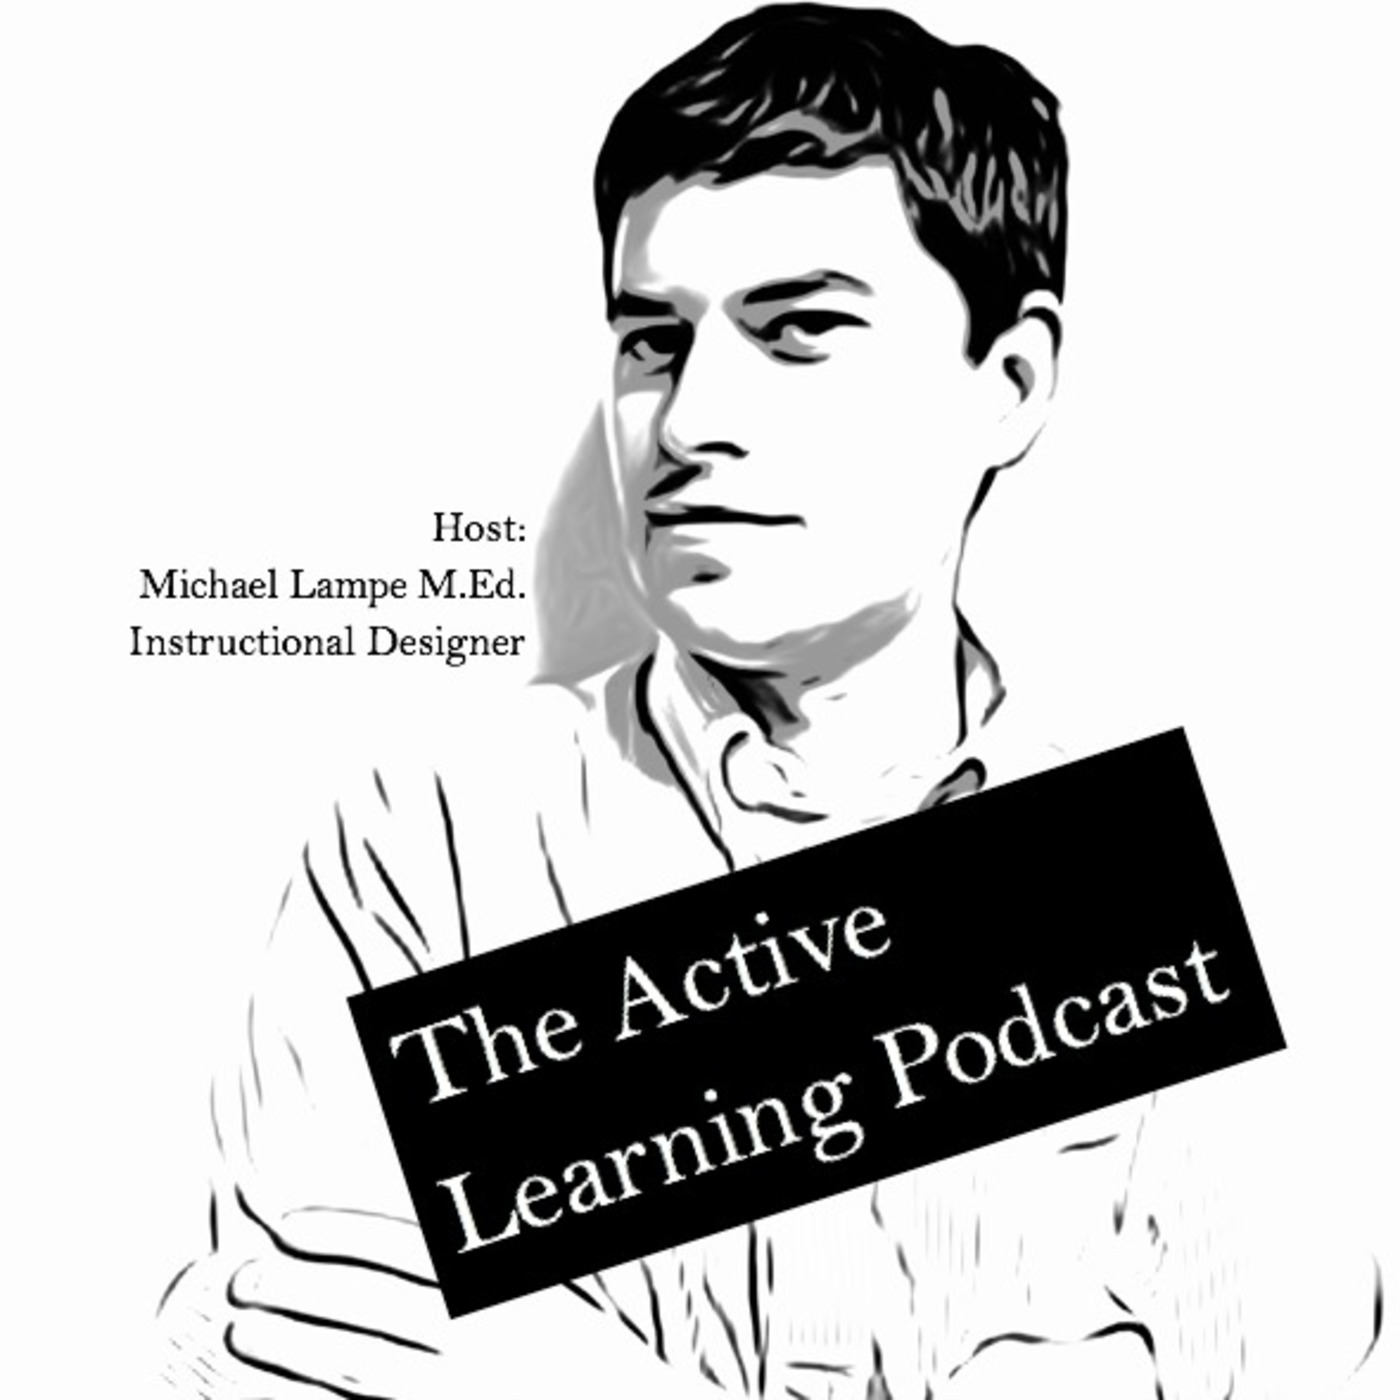 The Active Learning Podcast